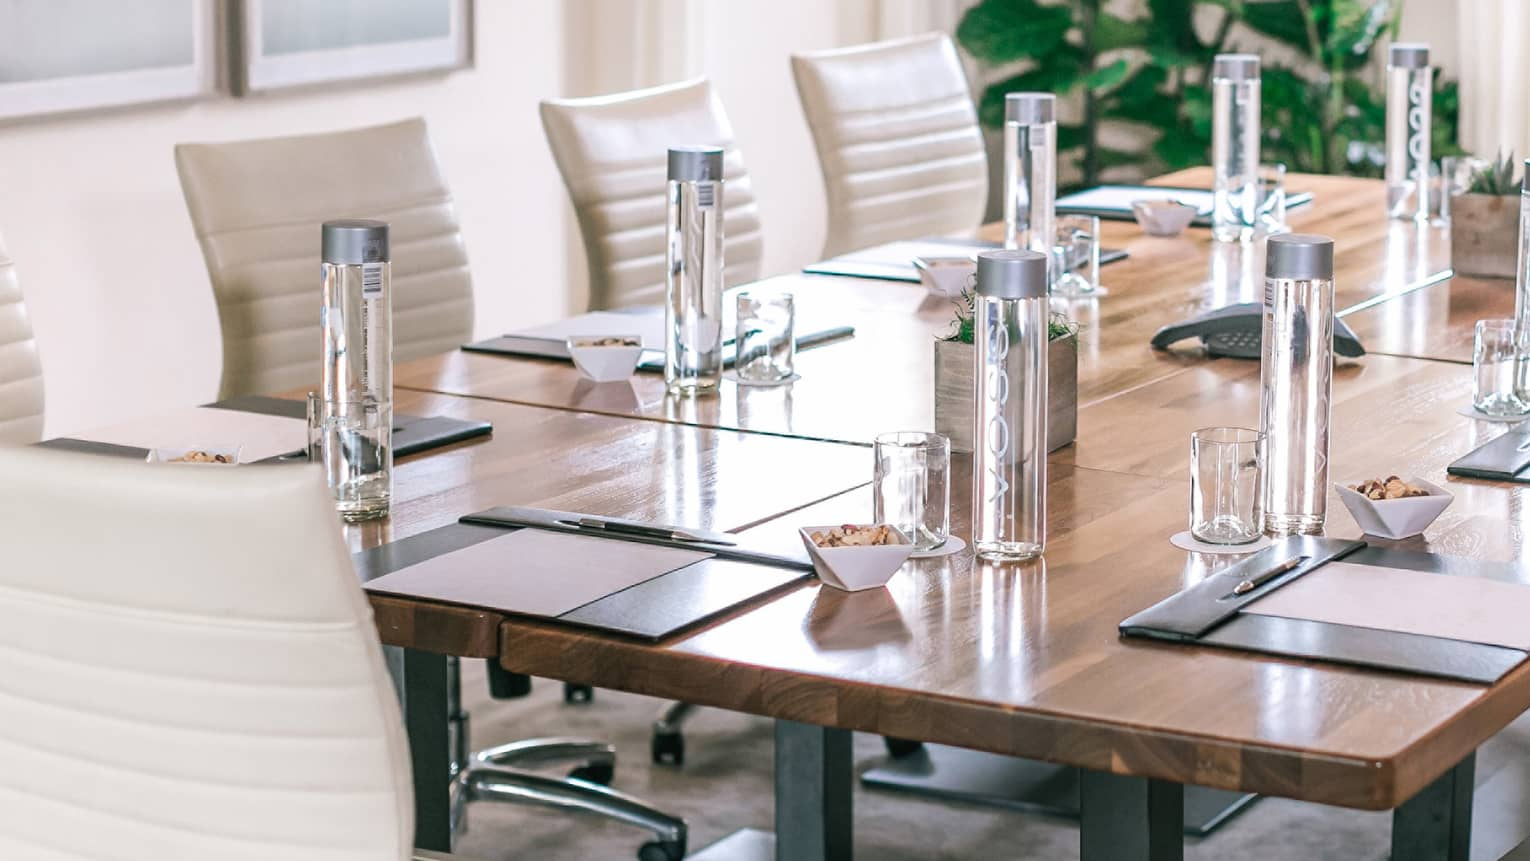 A rectangular boardroom table set with clear glass water bottles and black folders in a naturally-lit room